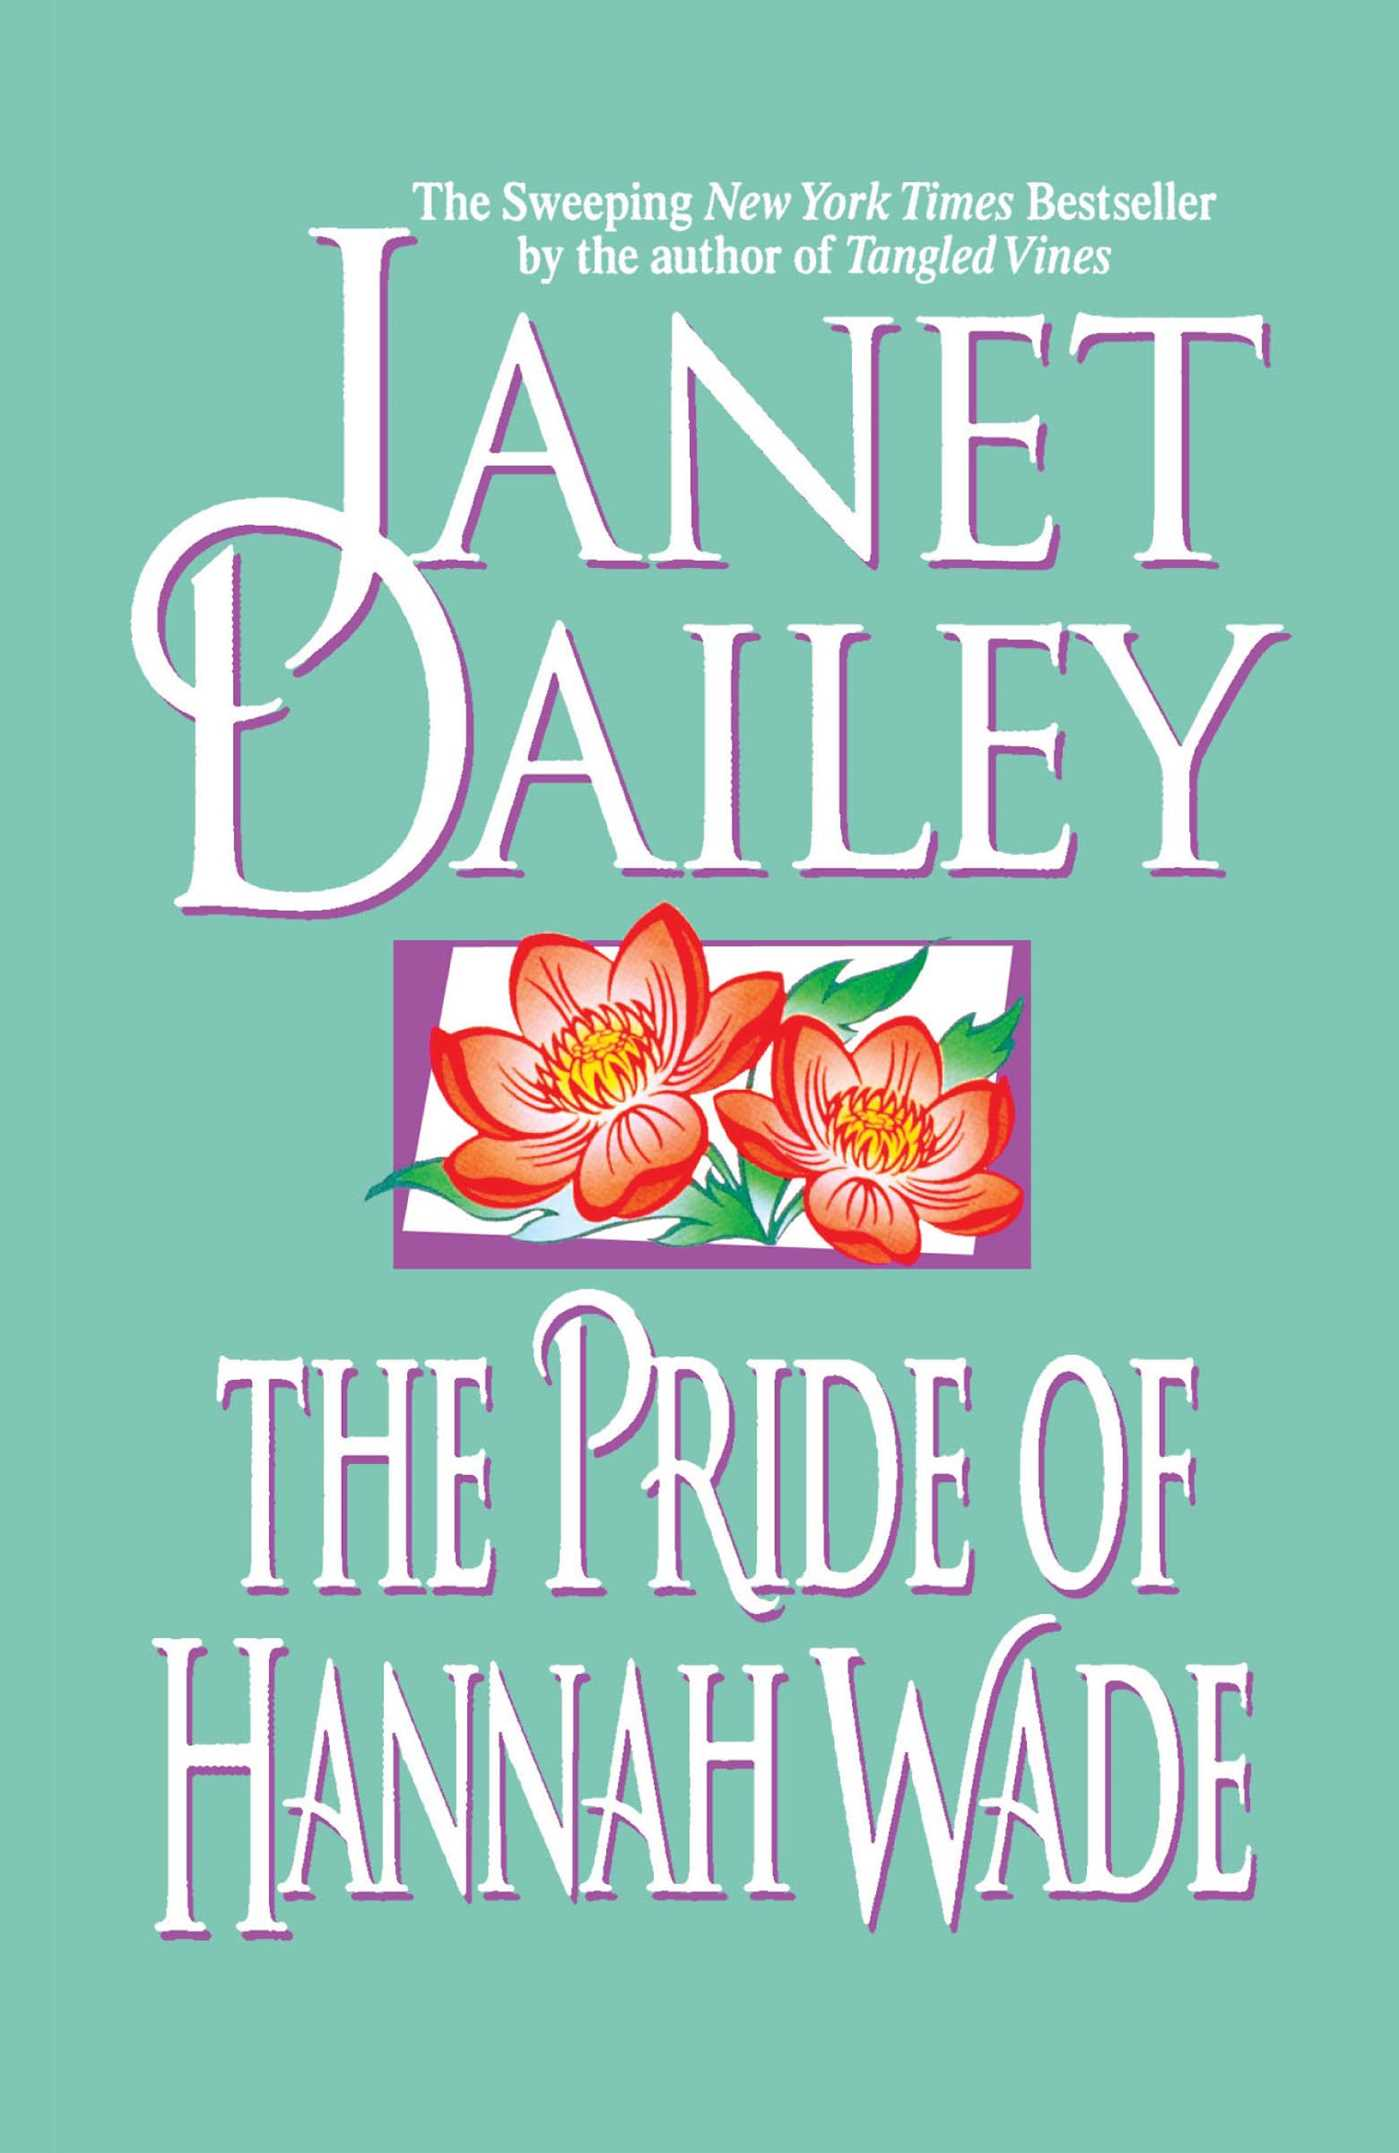 The-pride-of-hannah-wade-9781416588788_hr